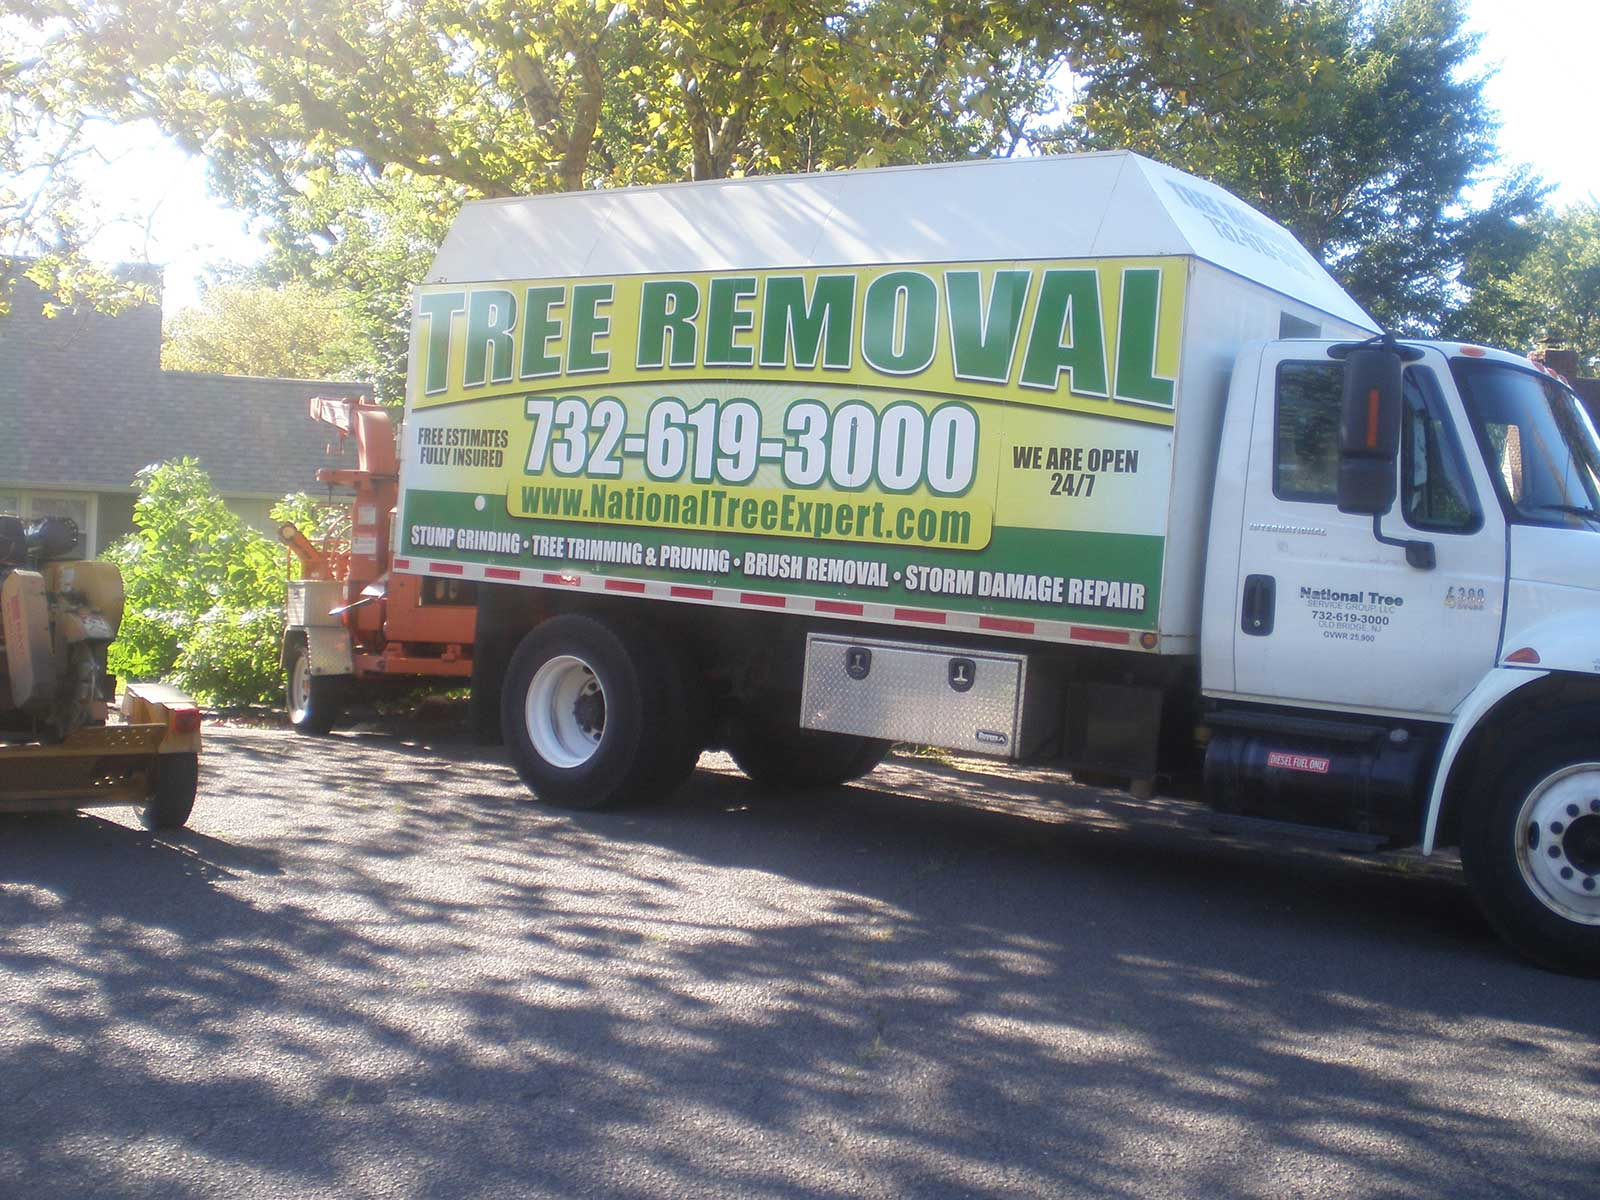 Open 7 Days a Week for Tree Service